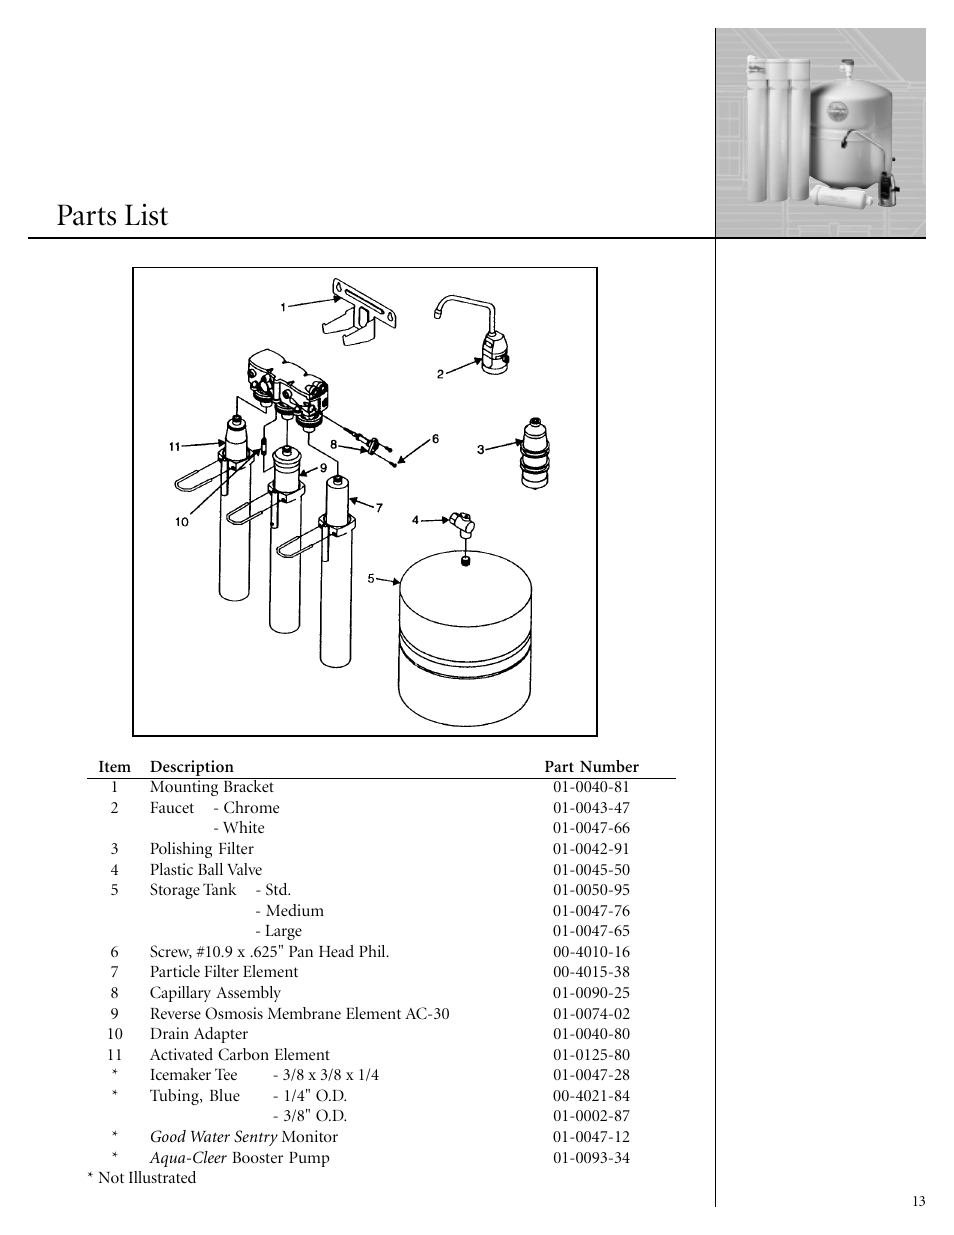 aqua cleer manual various owner manual guide u2022 rh justk co Culligan Aqua-Cleer Owner's Manual Culligan Parts List